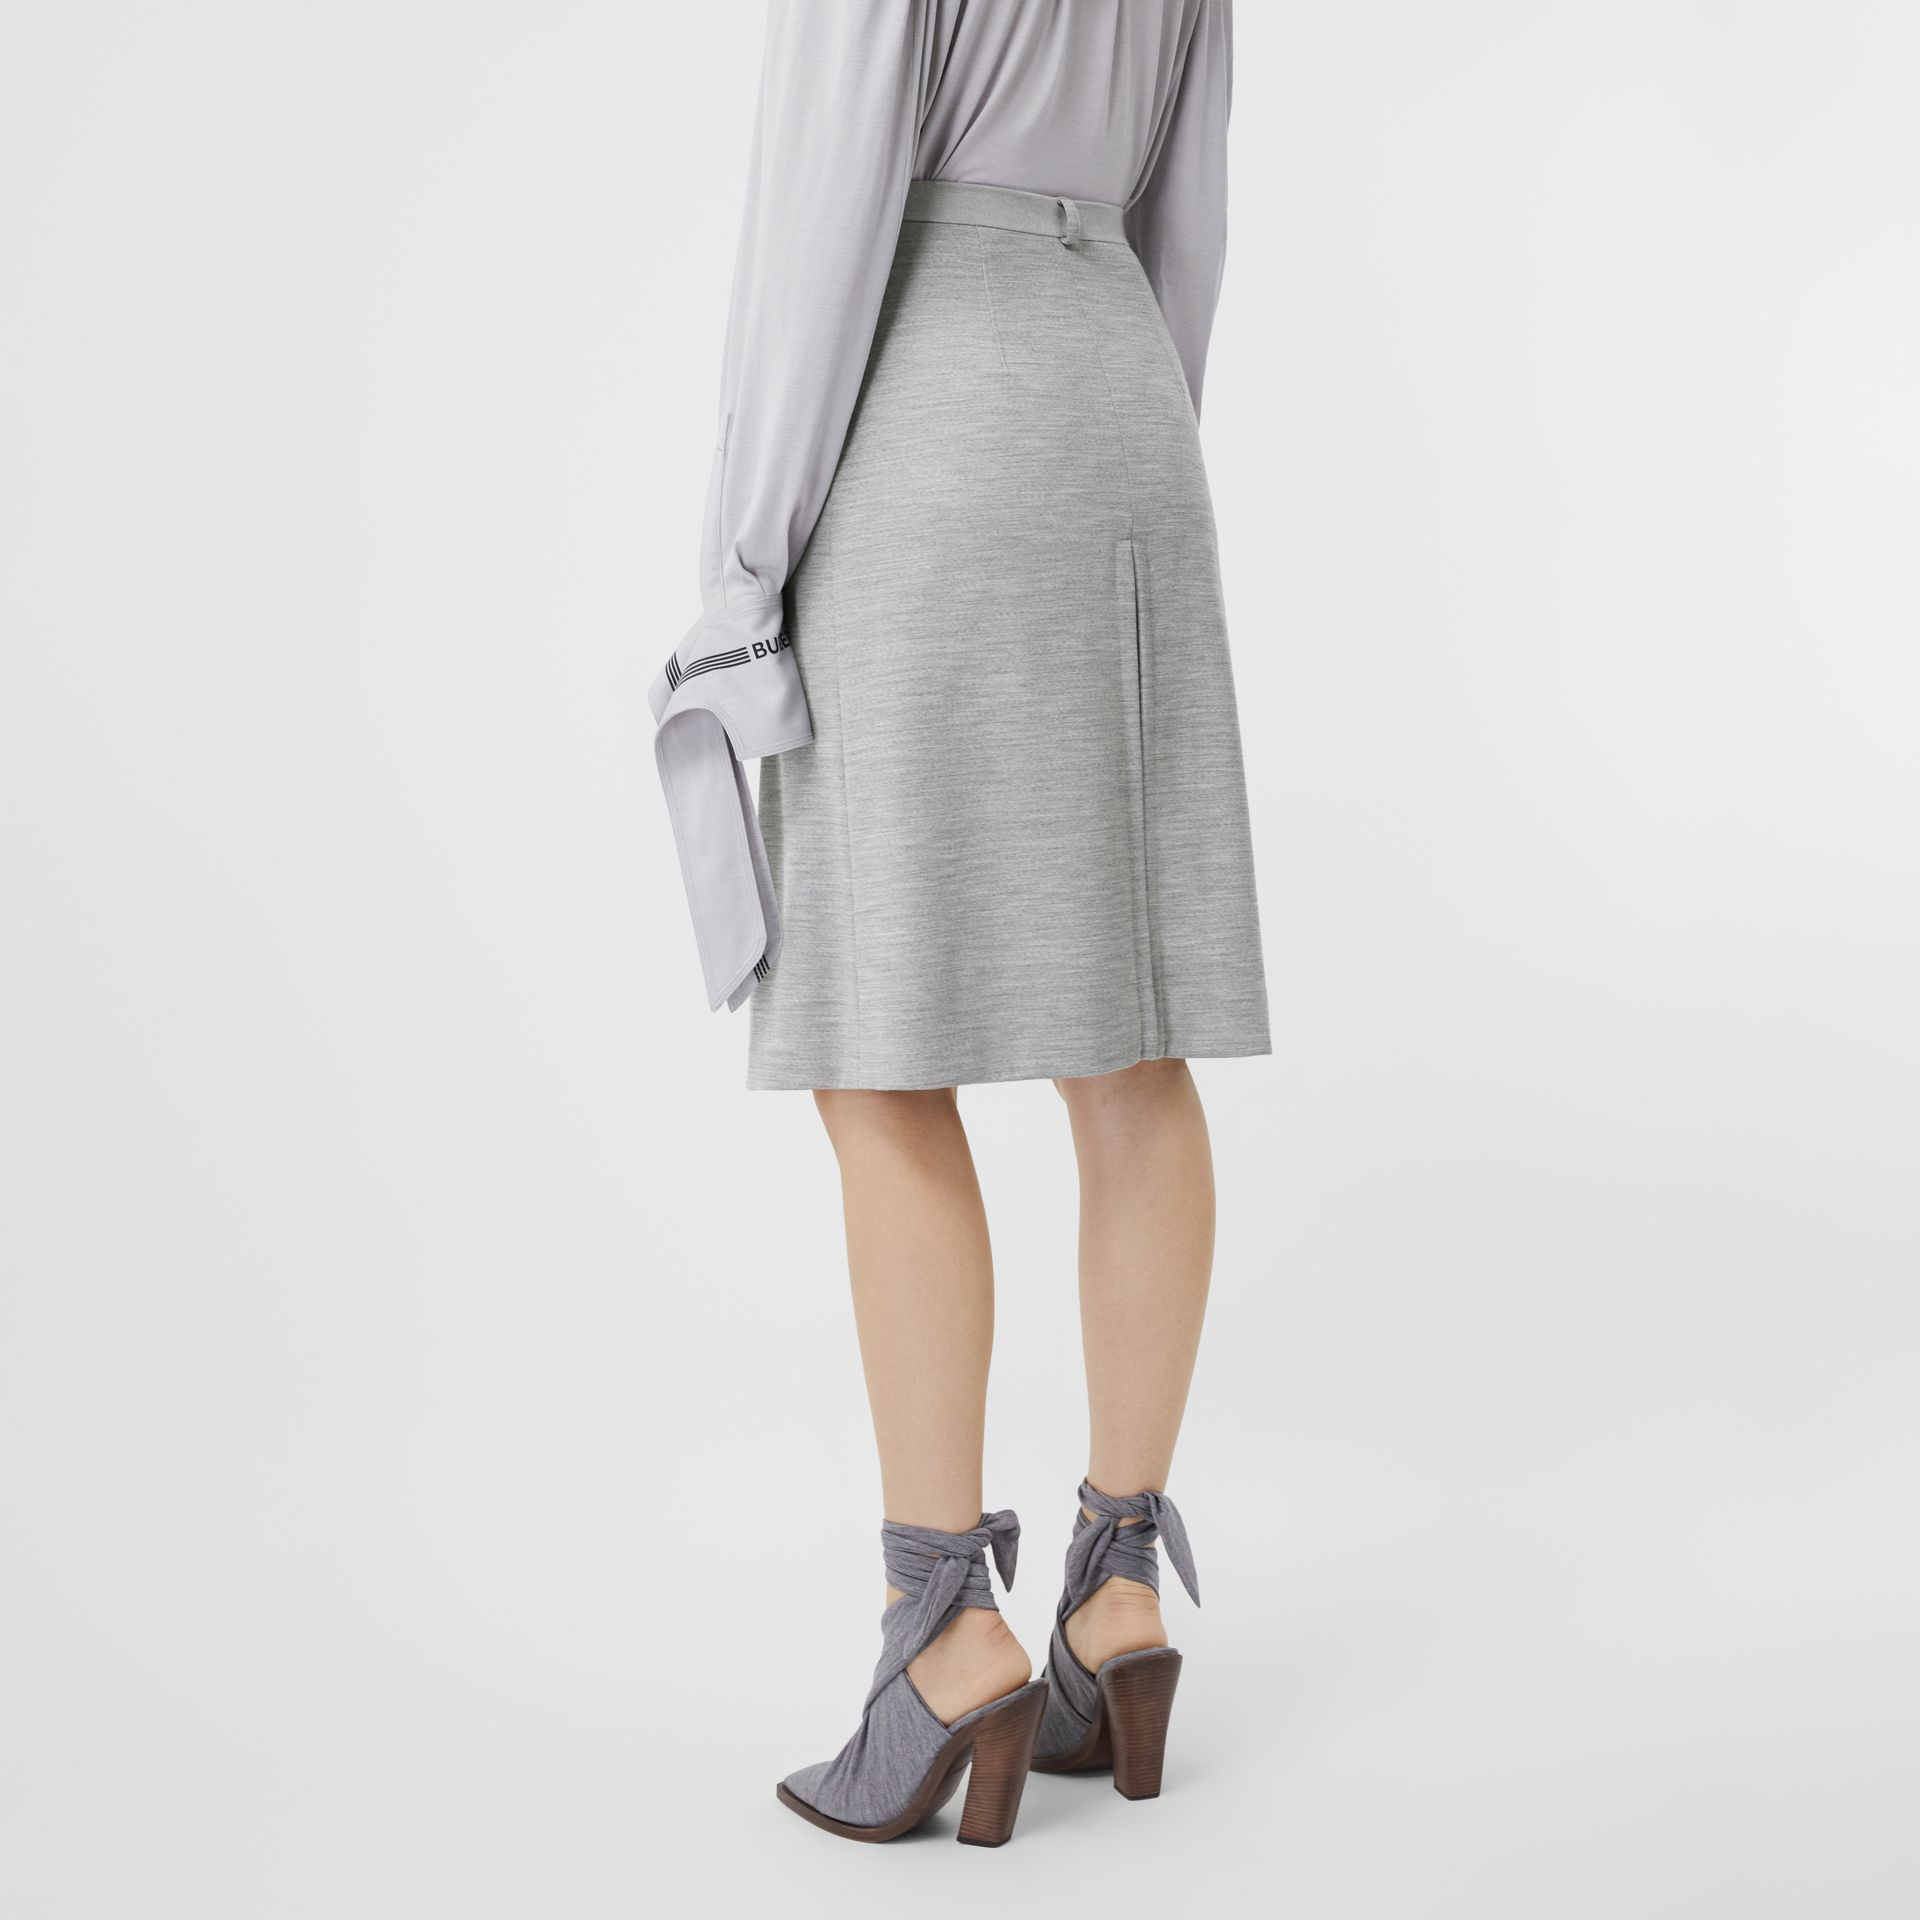 Box-pleat Detail Technical Wool Jersey A-line Skirt in Cloud Grey - Women | Burberry - gallery image 2